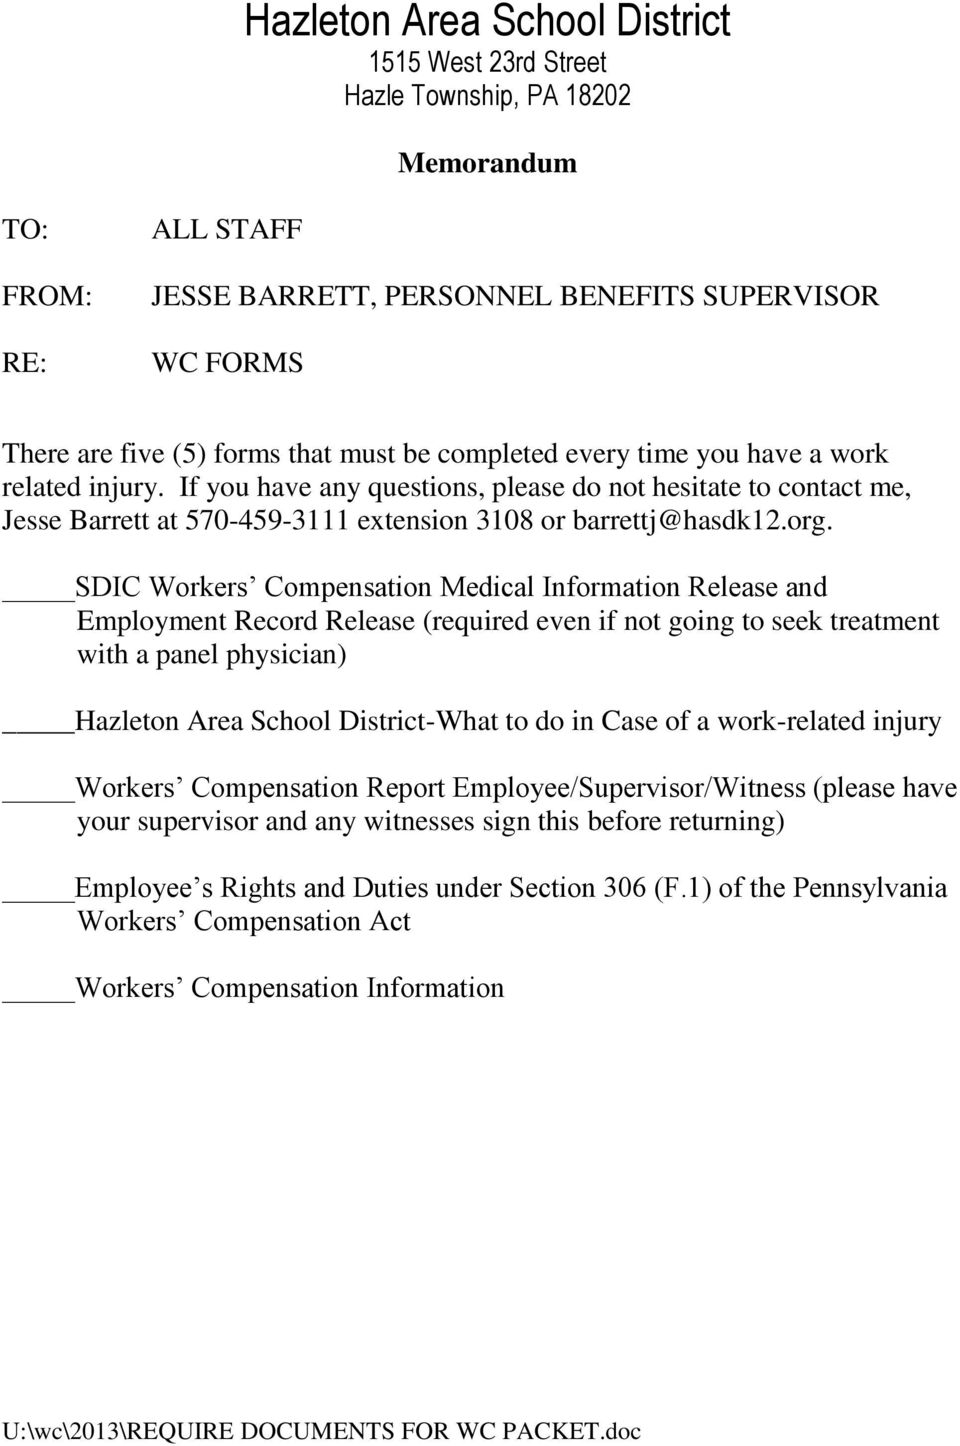 SDIC Workers Compensation Medical Information Release and Employment Record Release (required even if not going to seek treatment with a panel physician) Hazleton Area School District-What to do in